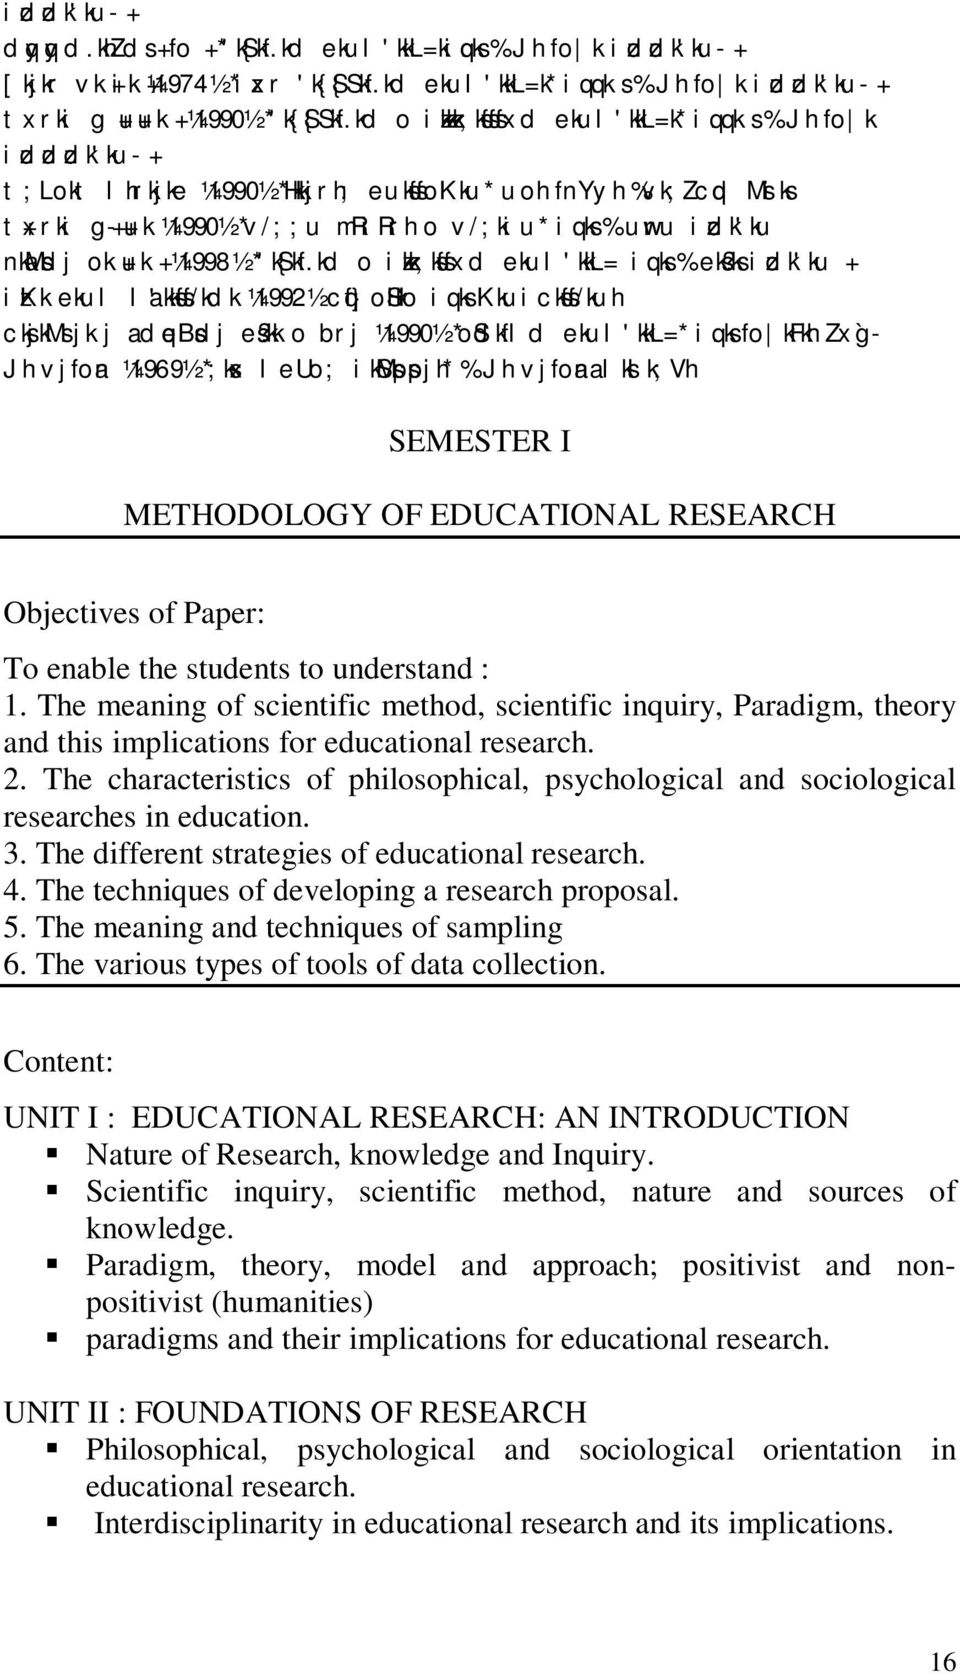 sociology research paper sample good conclusions for research  sociology vs psychology research paper social identity key ideas amazon co uk richard jenkins books